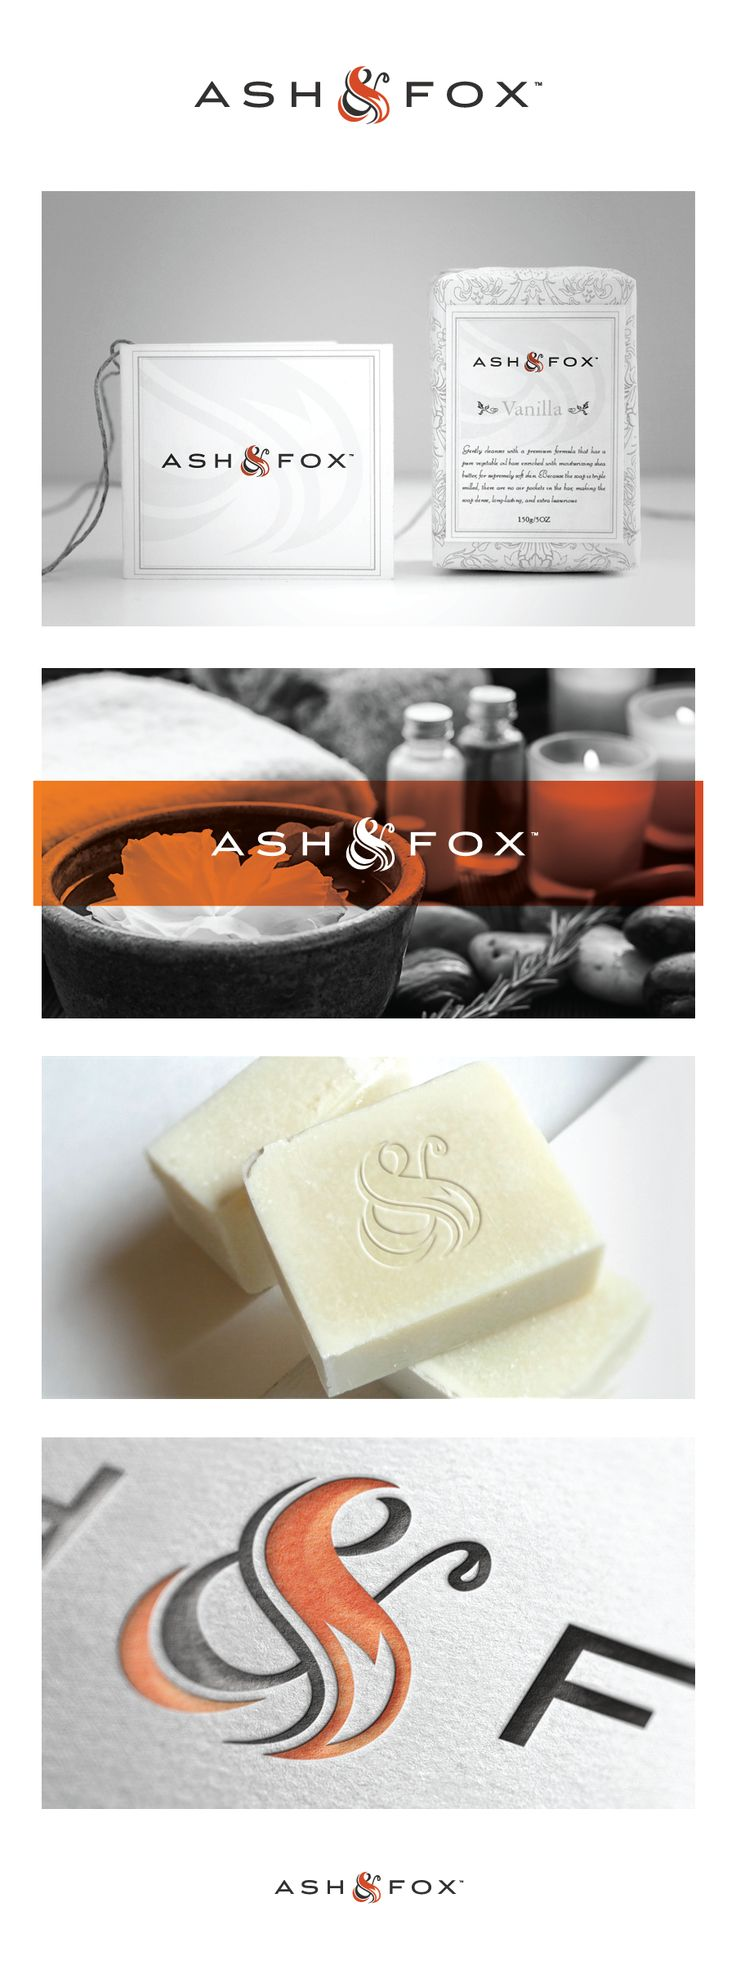 April 2013: Ash & Fox logo and branding by Mogeek